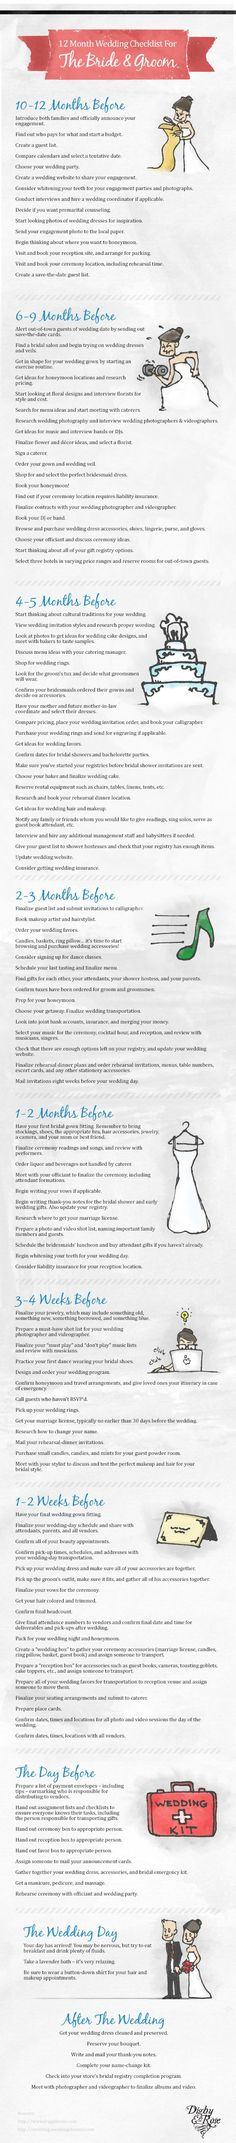 A Super Helpful 12 Month Wedding Planning Checklist - a Very Useful Resource To Help You Plan Your Wedding At a Glance!